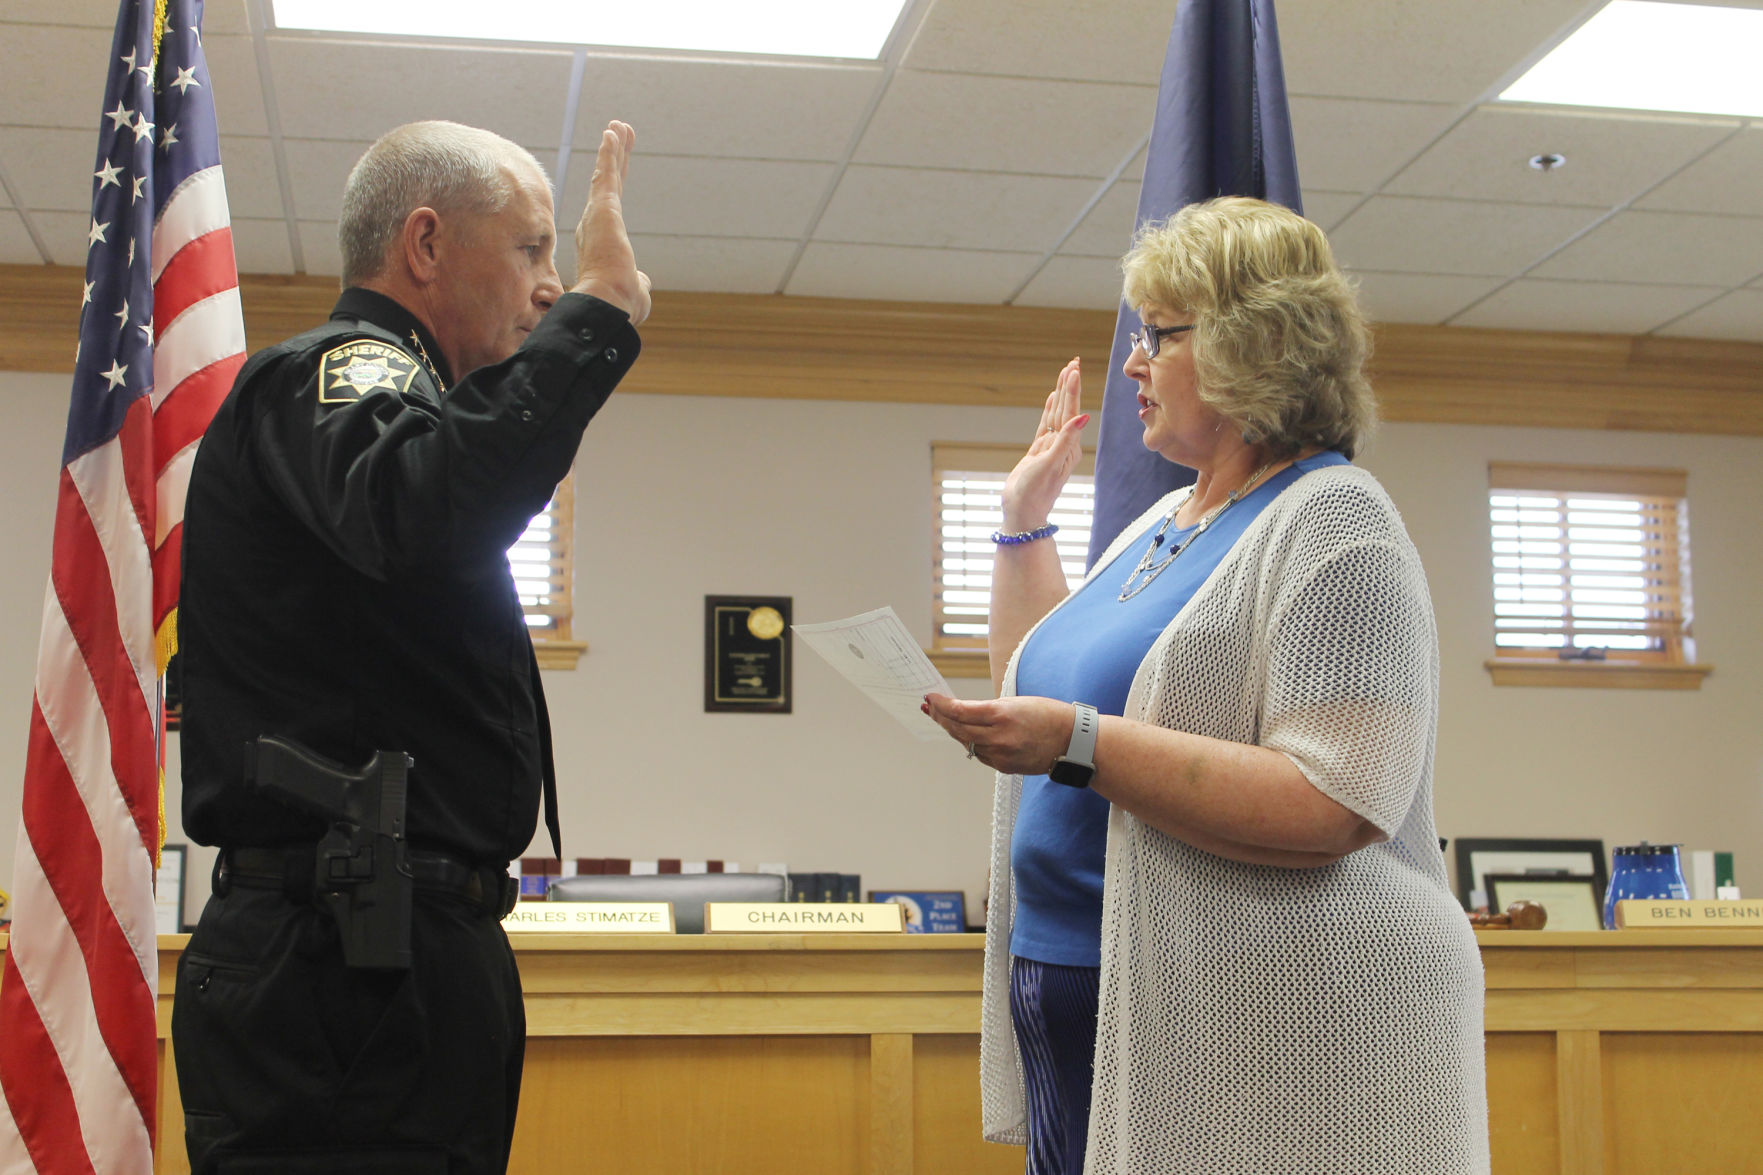 Jackson sworn in as Geary County's new sheriff